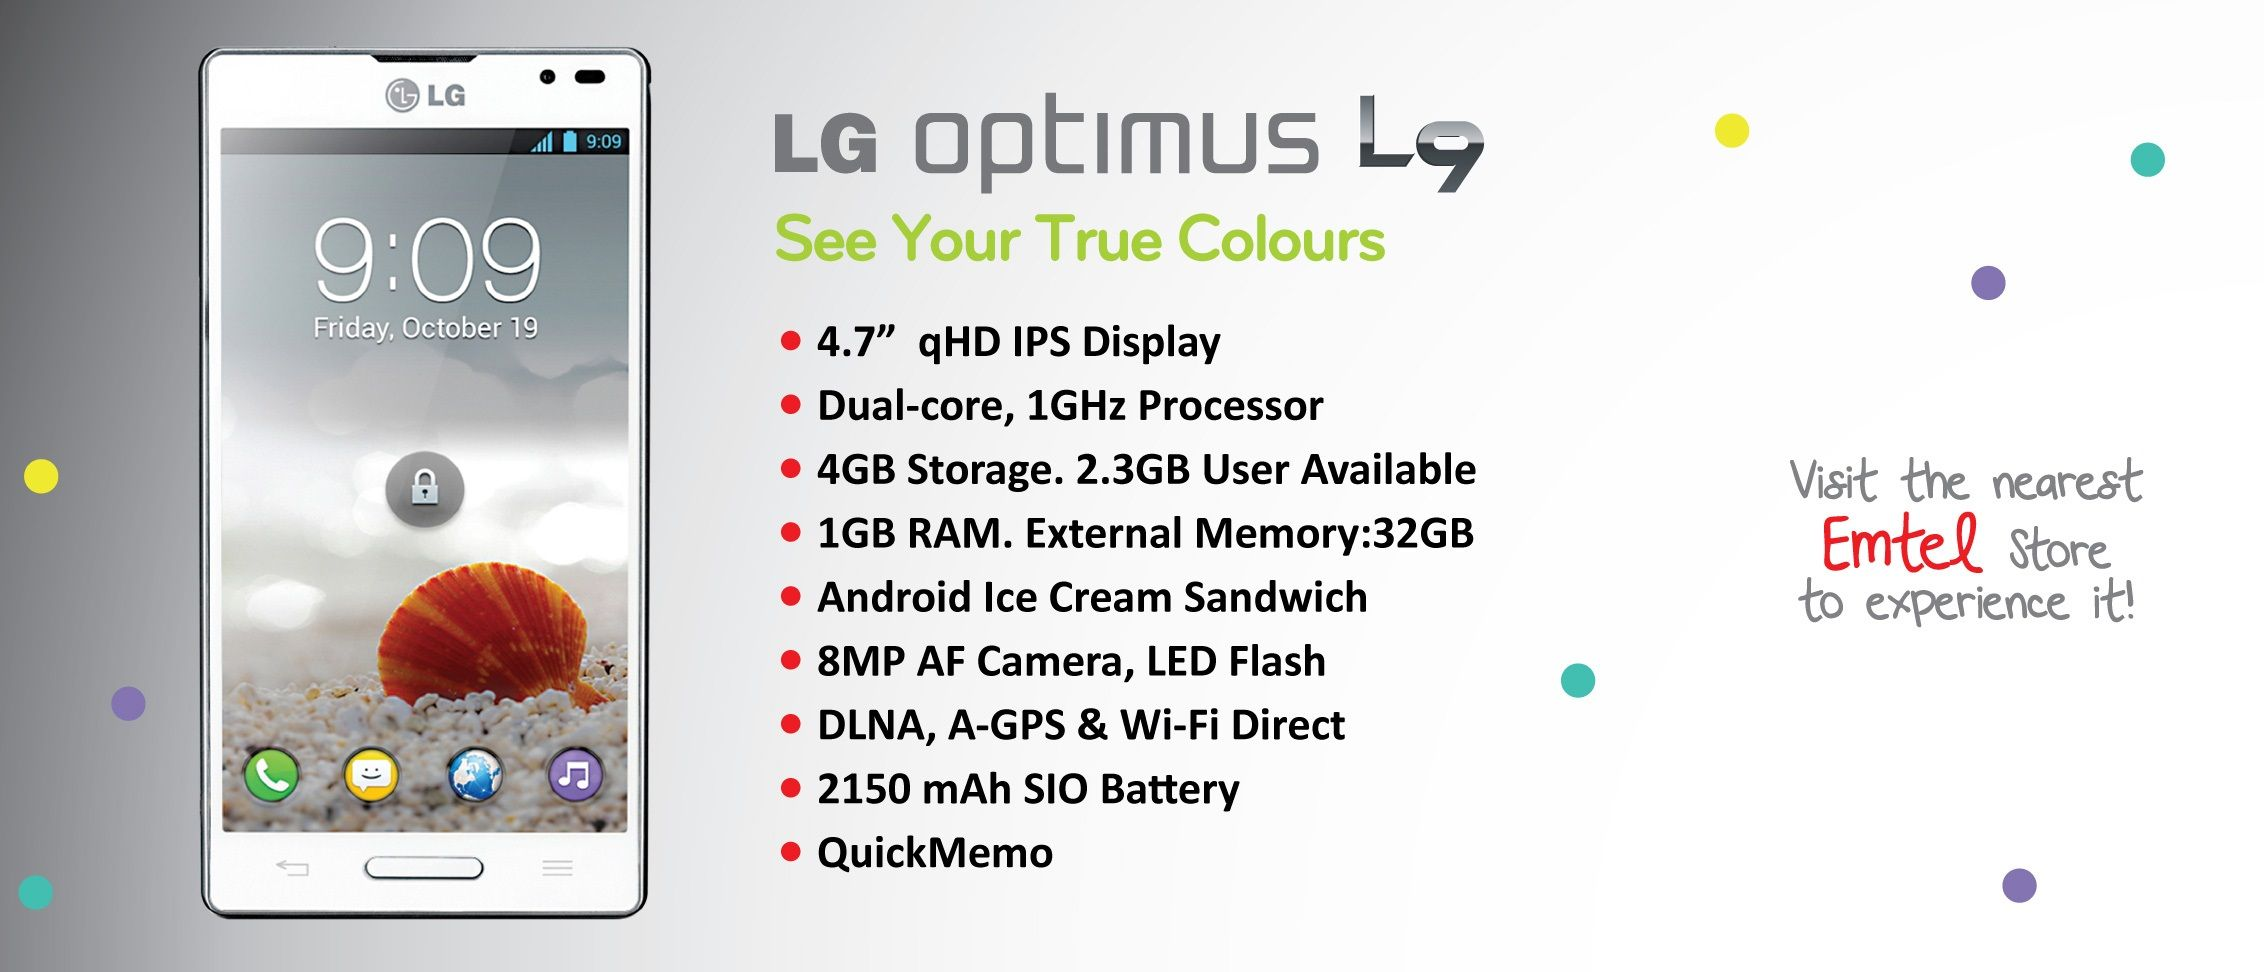 LG OPTIMUS L9 | Devices | Android ice cream sandwich, Wifi